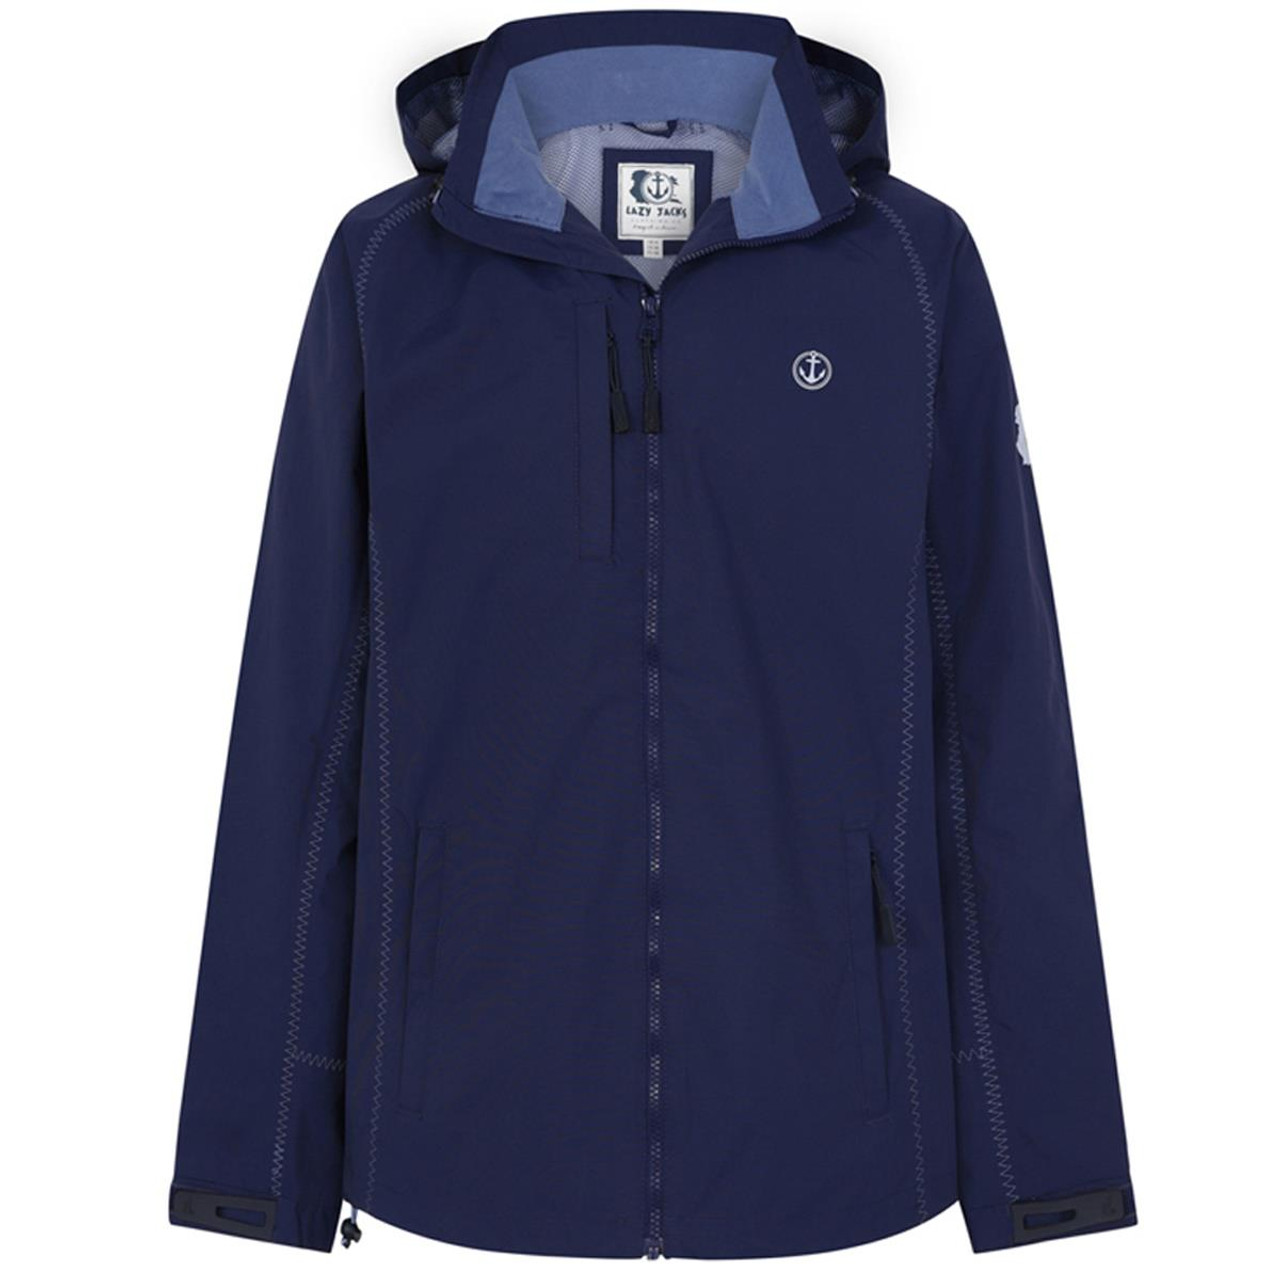 Marine Lazy Jacks Waterproof Jacket